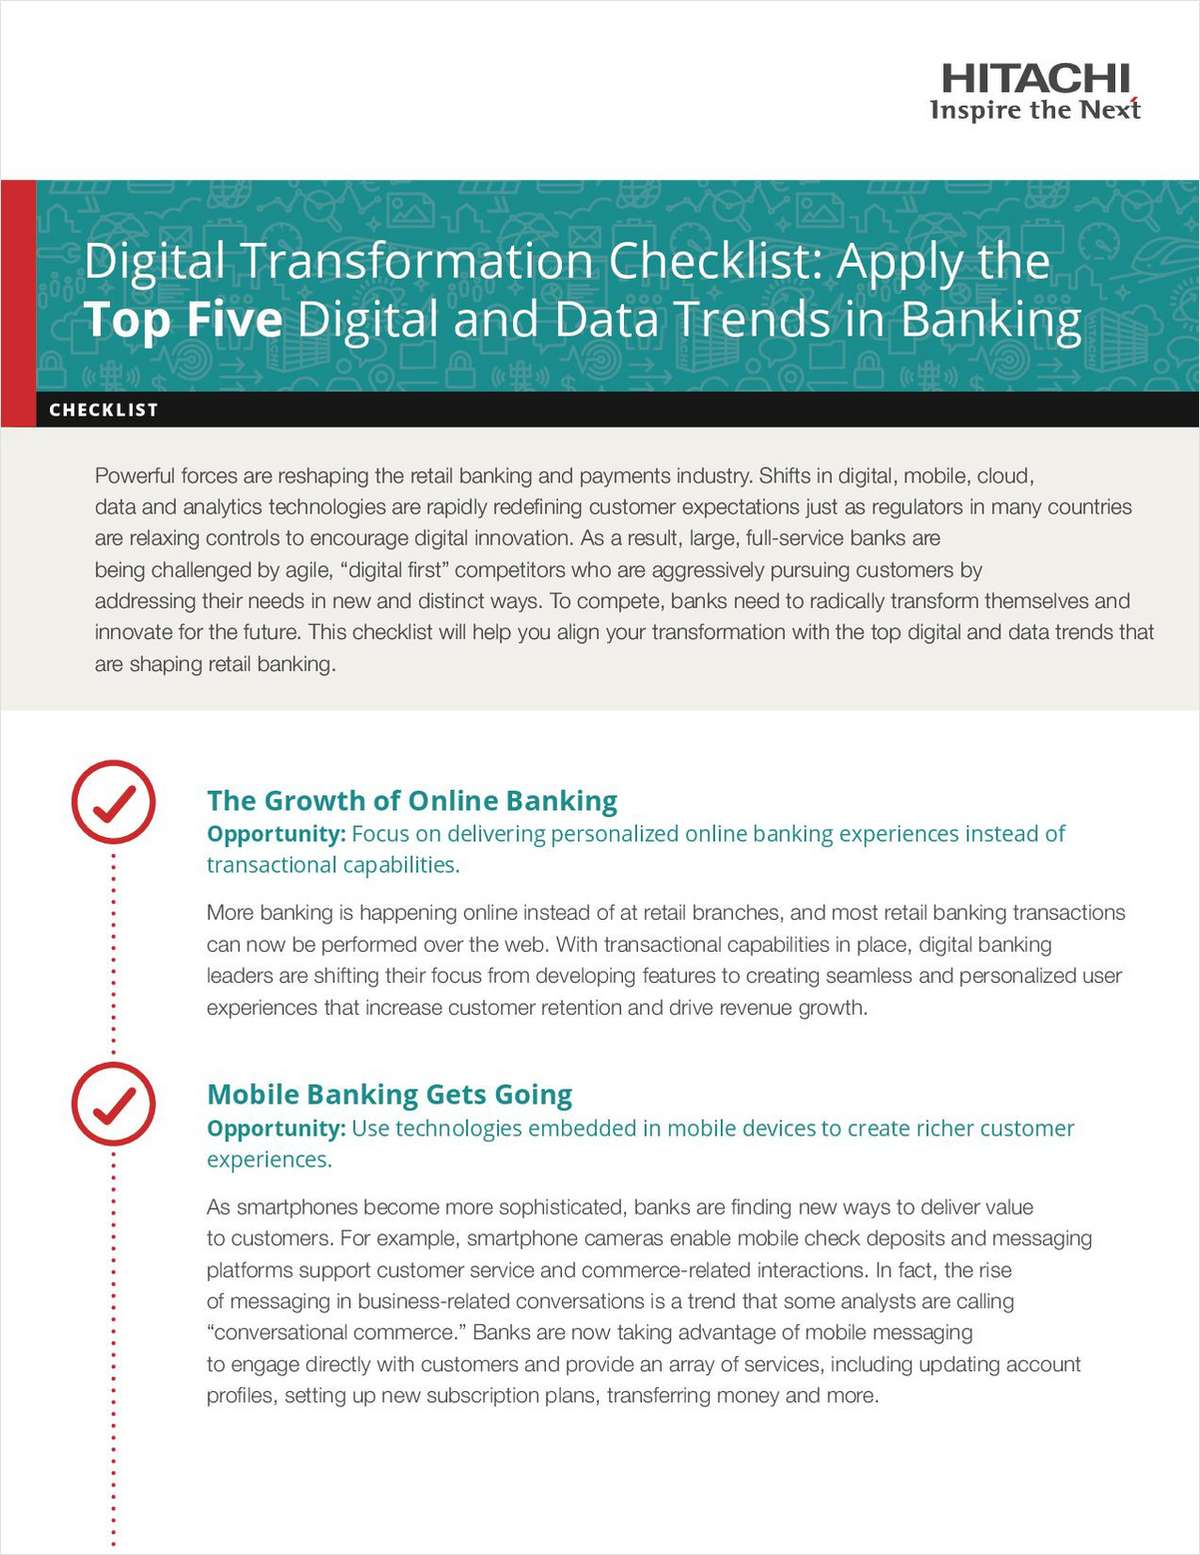 DX Checklist: Apply the Top Five Digital and Data Trends in Banking